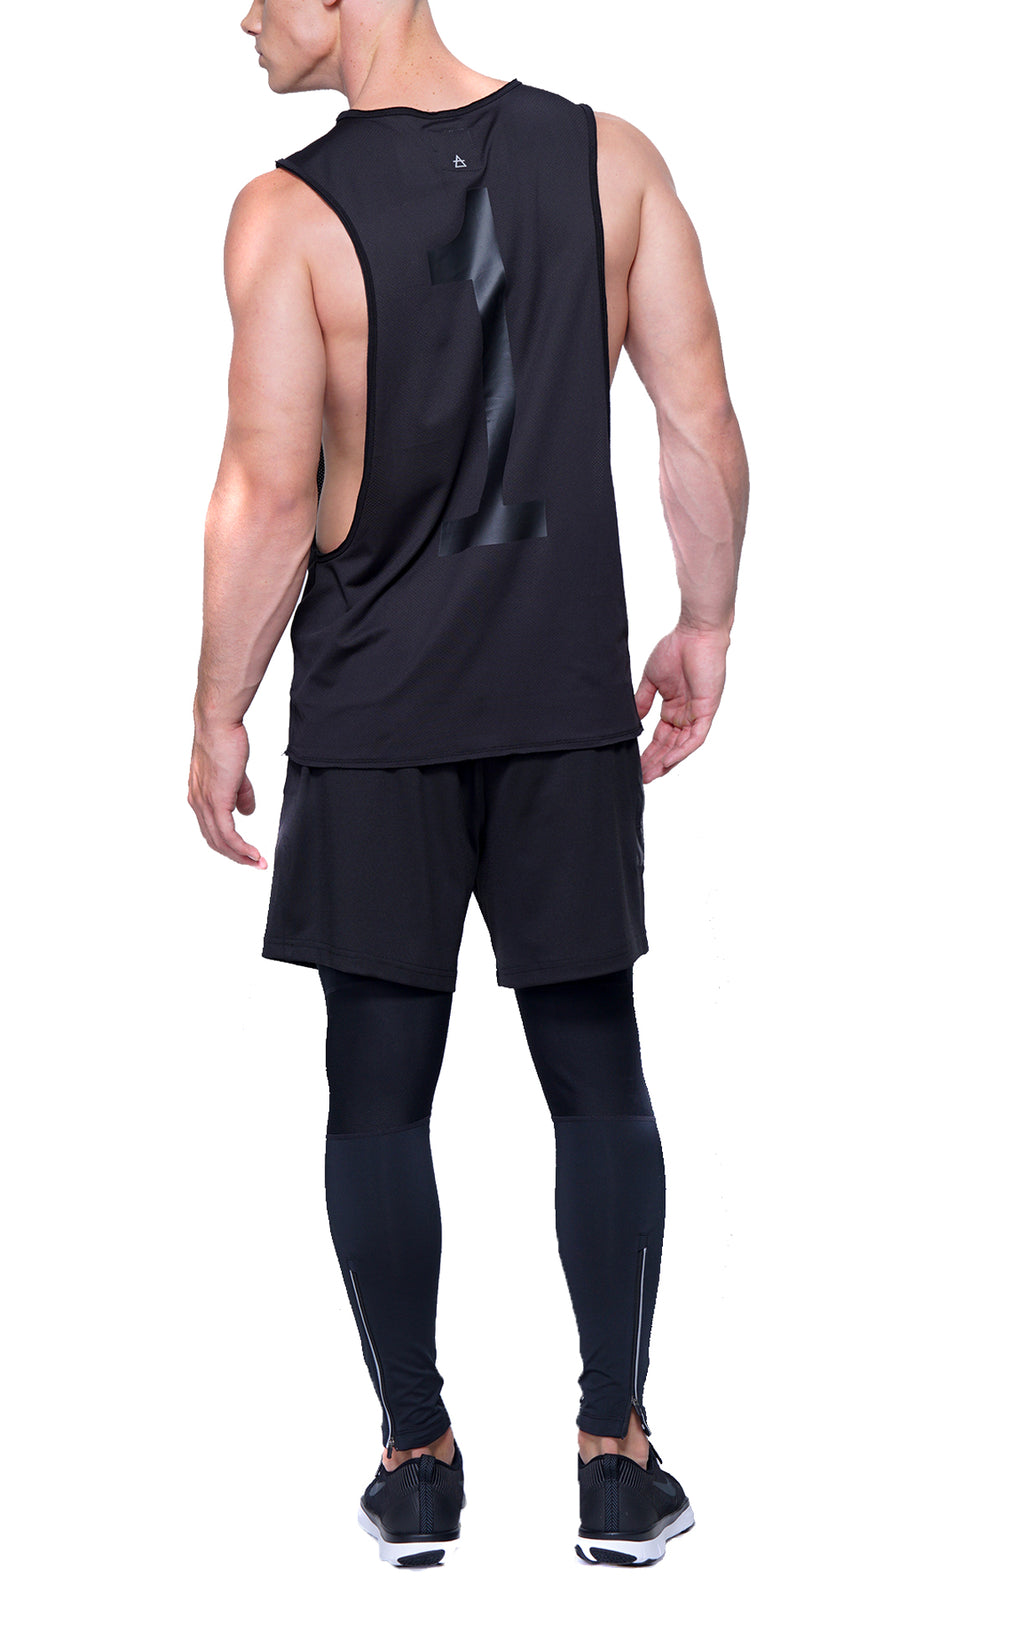 Mesh Ultimate Gym Cut-Off